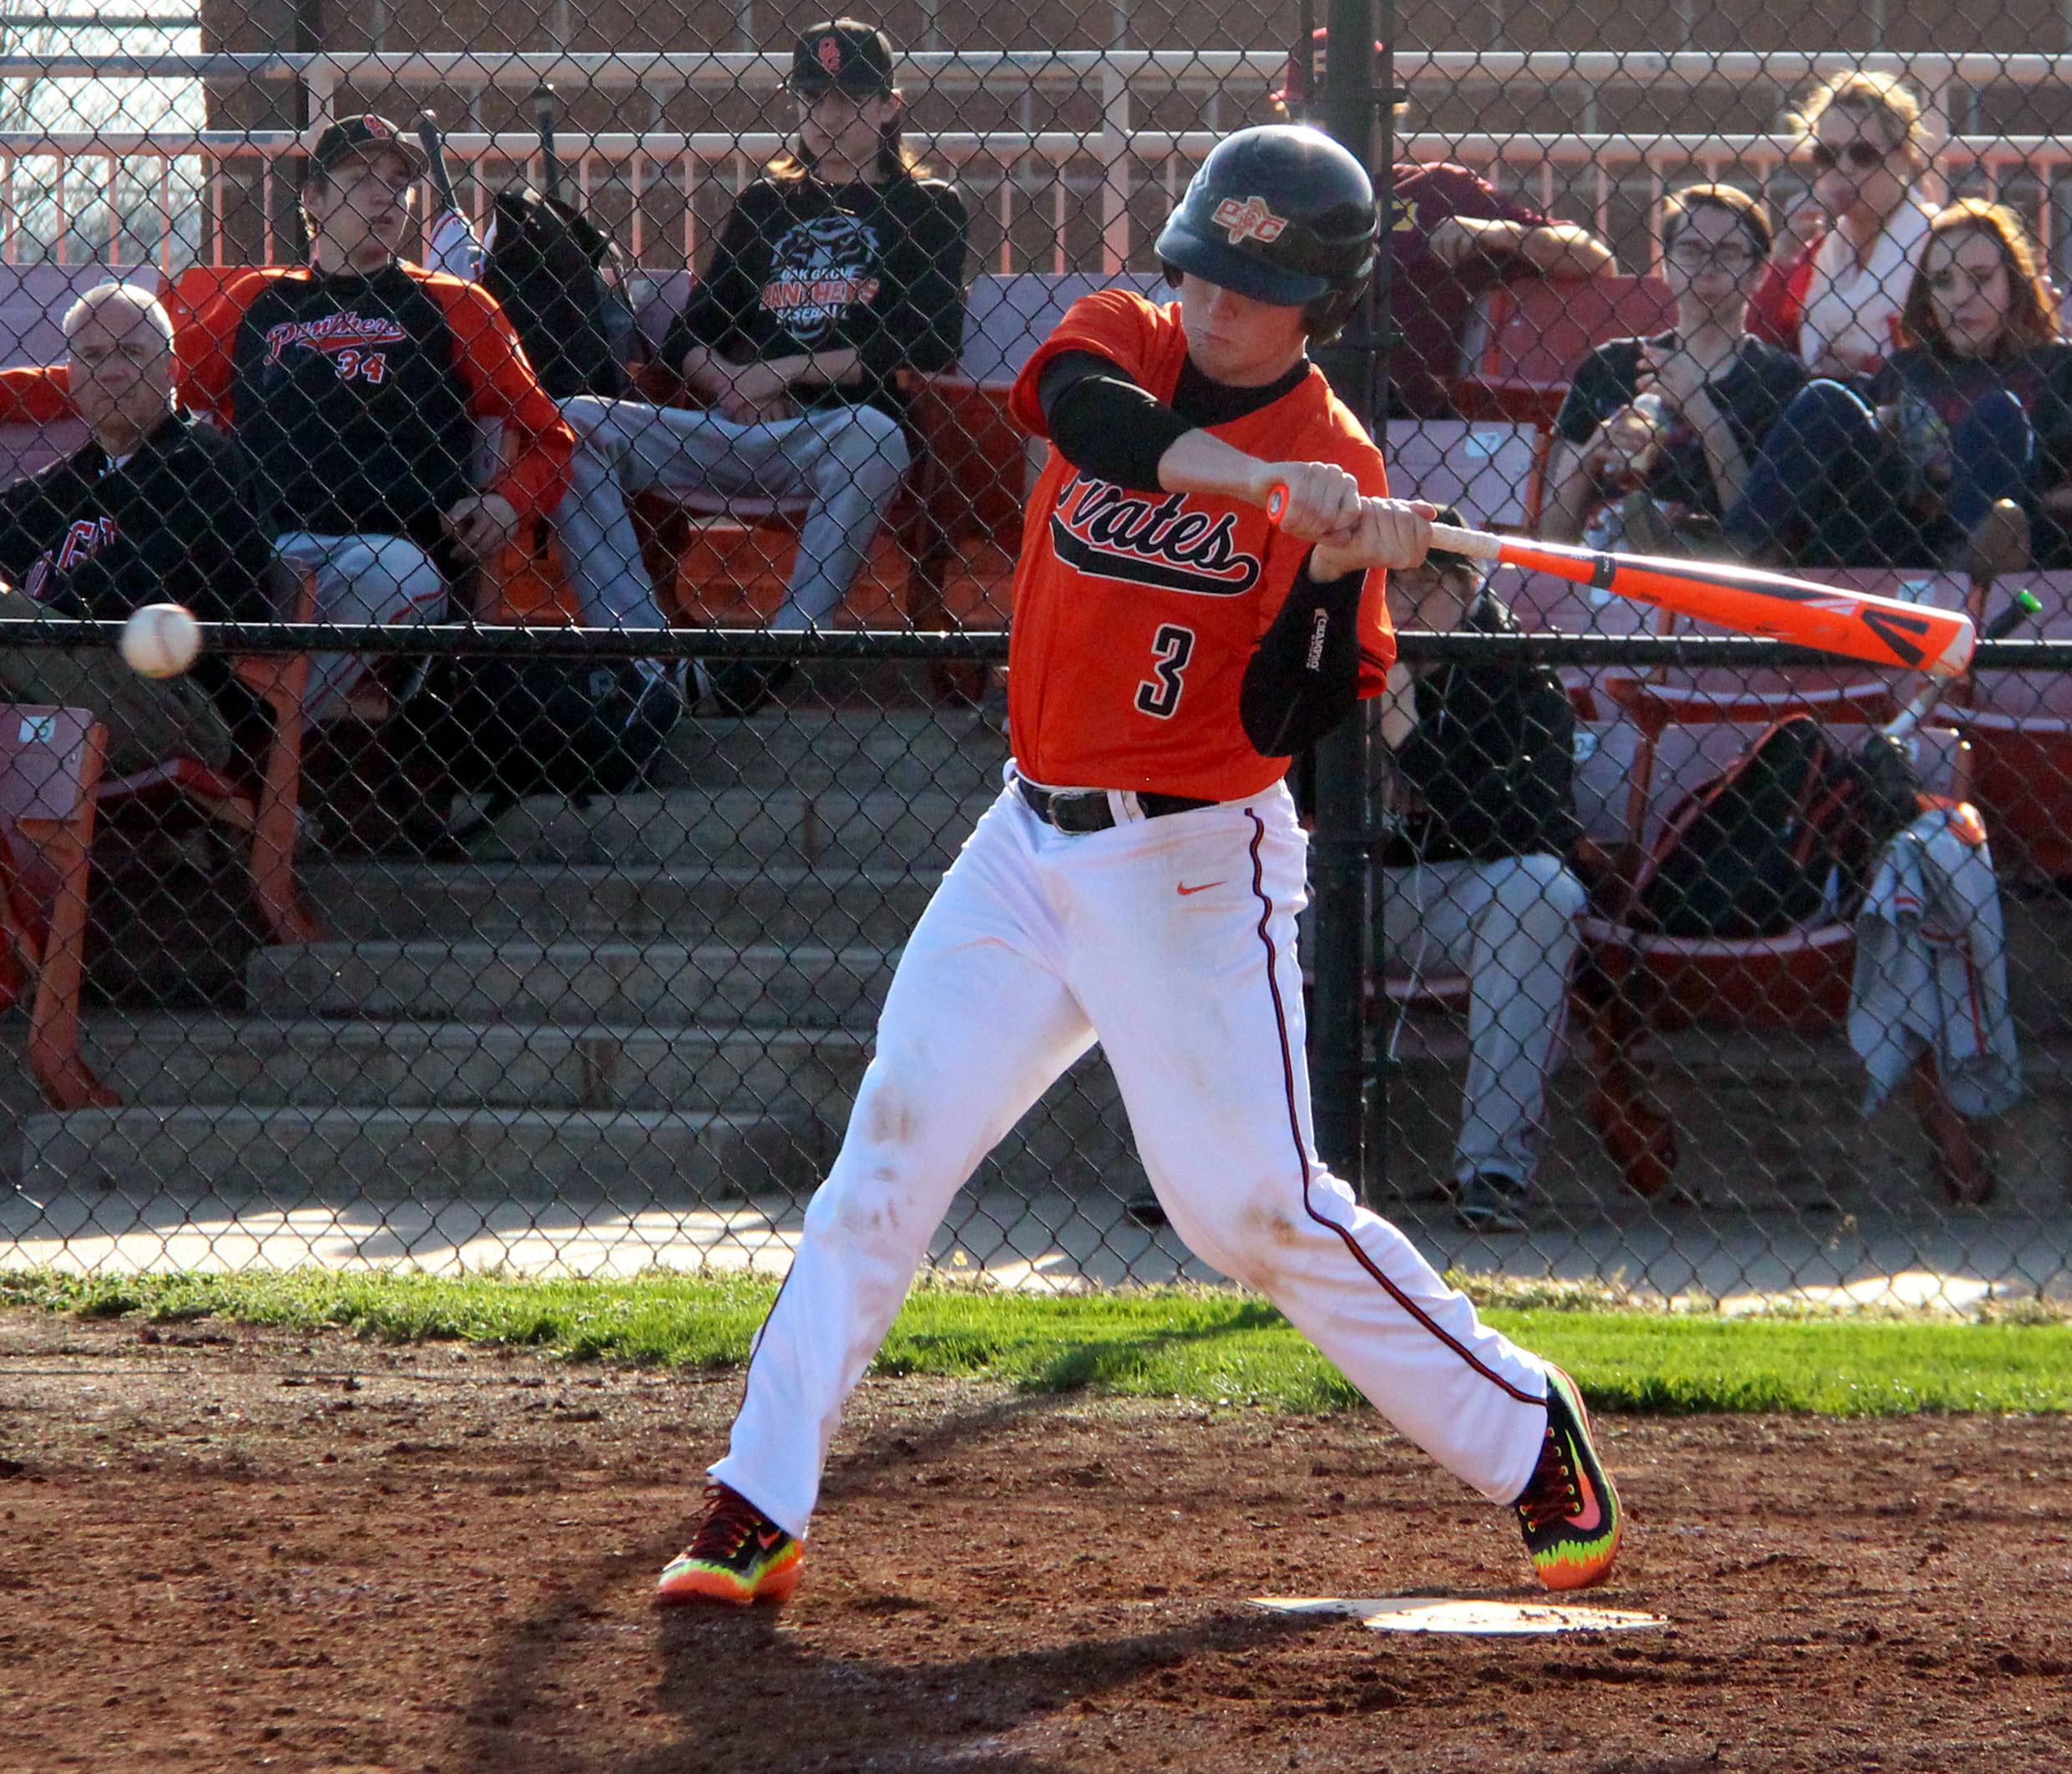 ROSS MARTIN/Citizen photo Platte County outfielder Dillon Doll takes a swing at a pitch against Oak Grove on Monday, March 28 at Platte County High School.